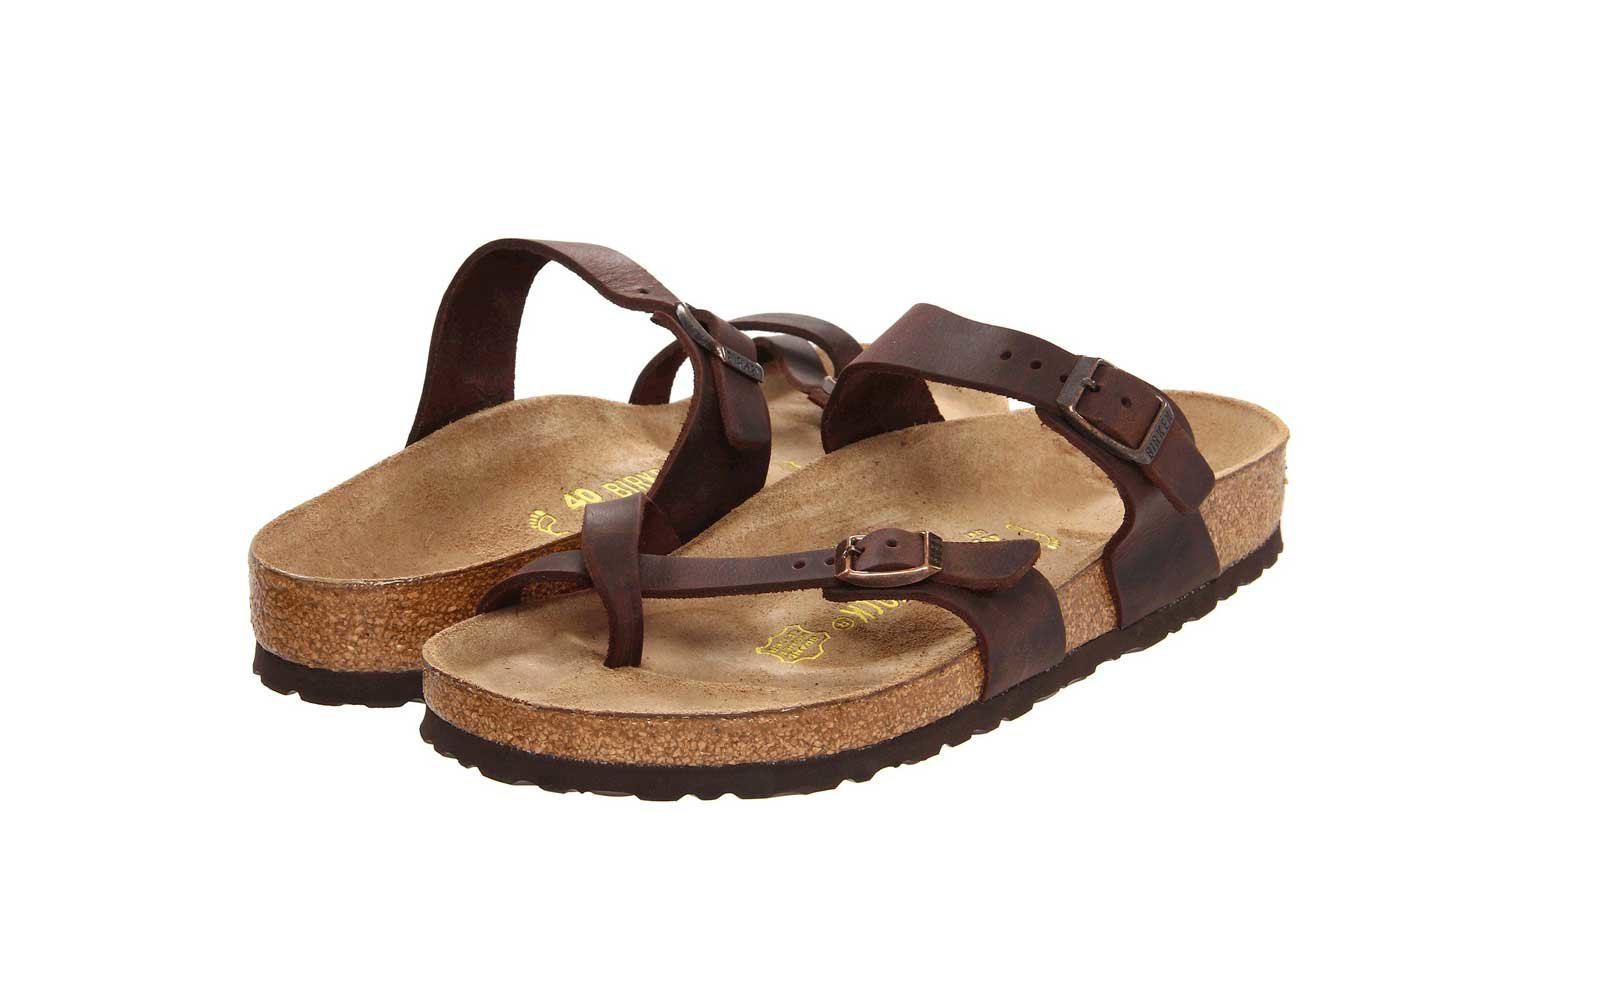 2b269110f The Most Comfortable Walking Sandals for Women